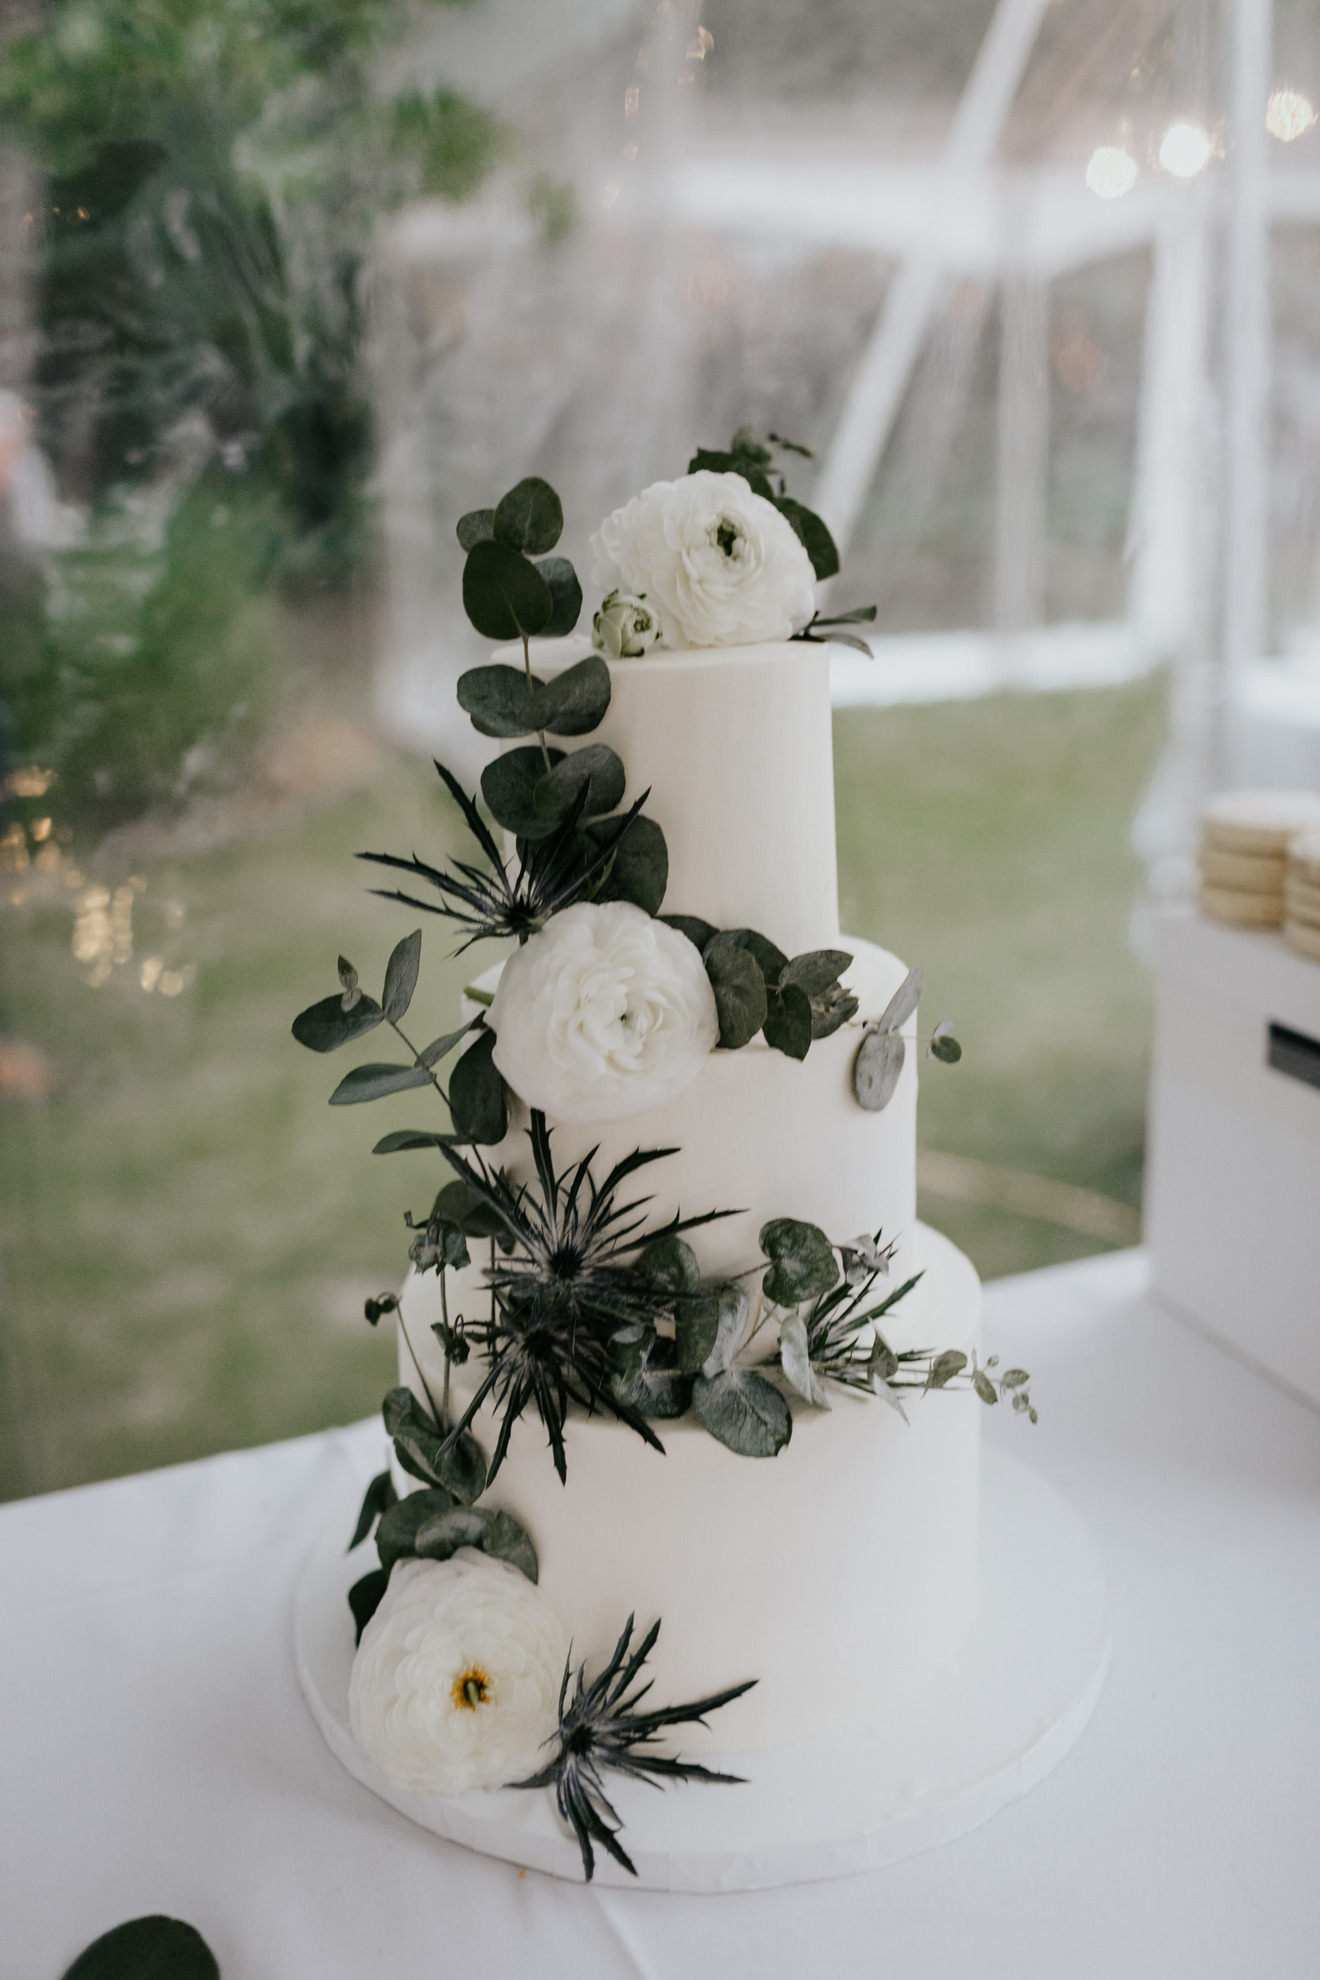 Things to Consider When Choosing Your Wedding Vendors